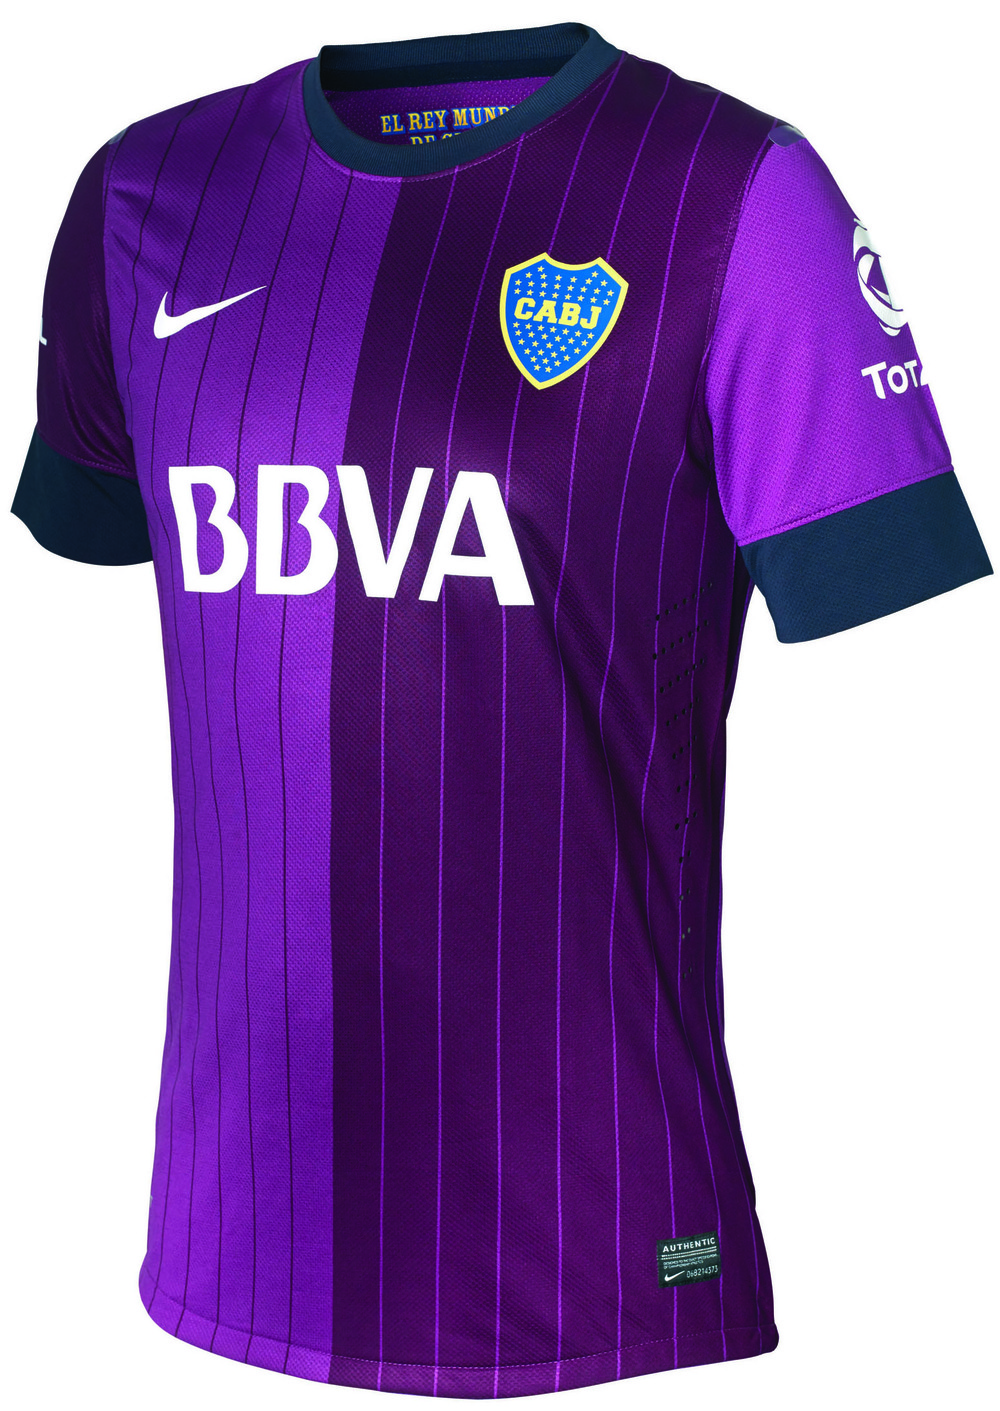 Boca_Juniors_Purple_Jersey_16759.jpg